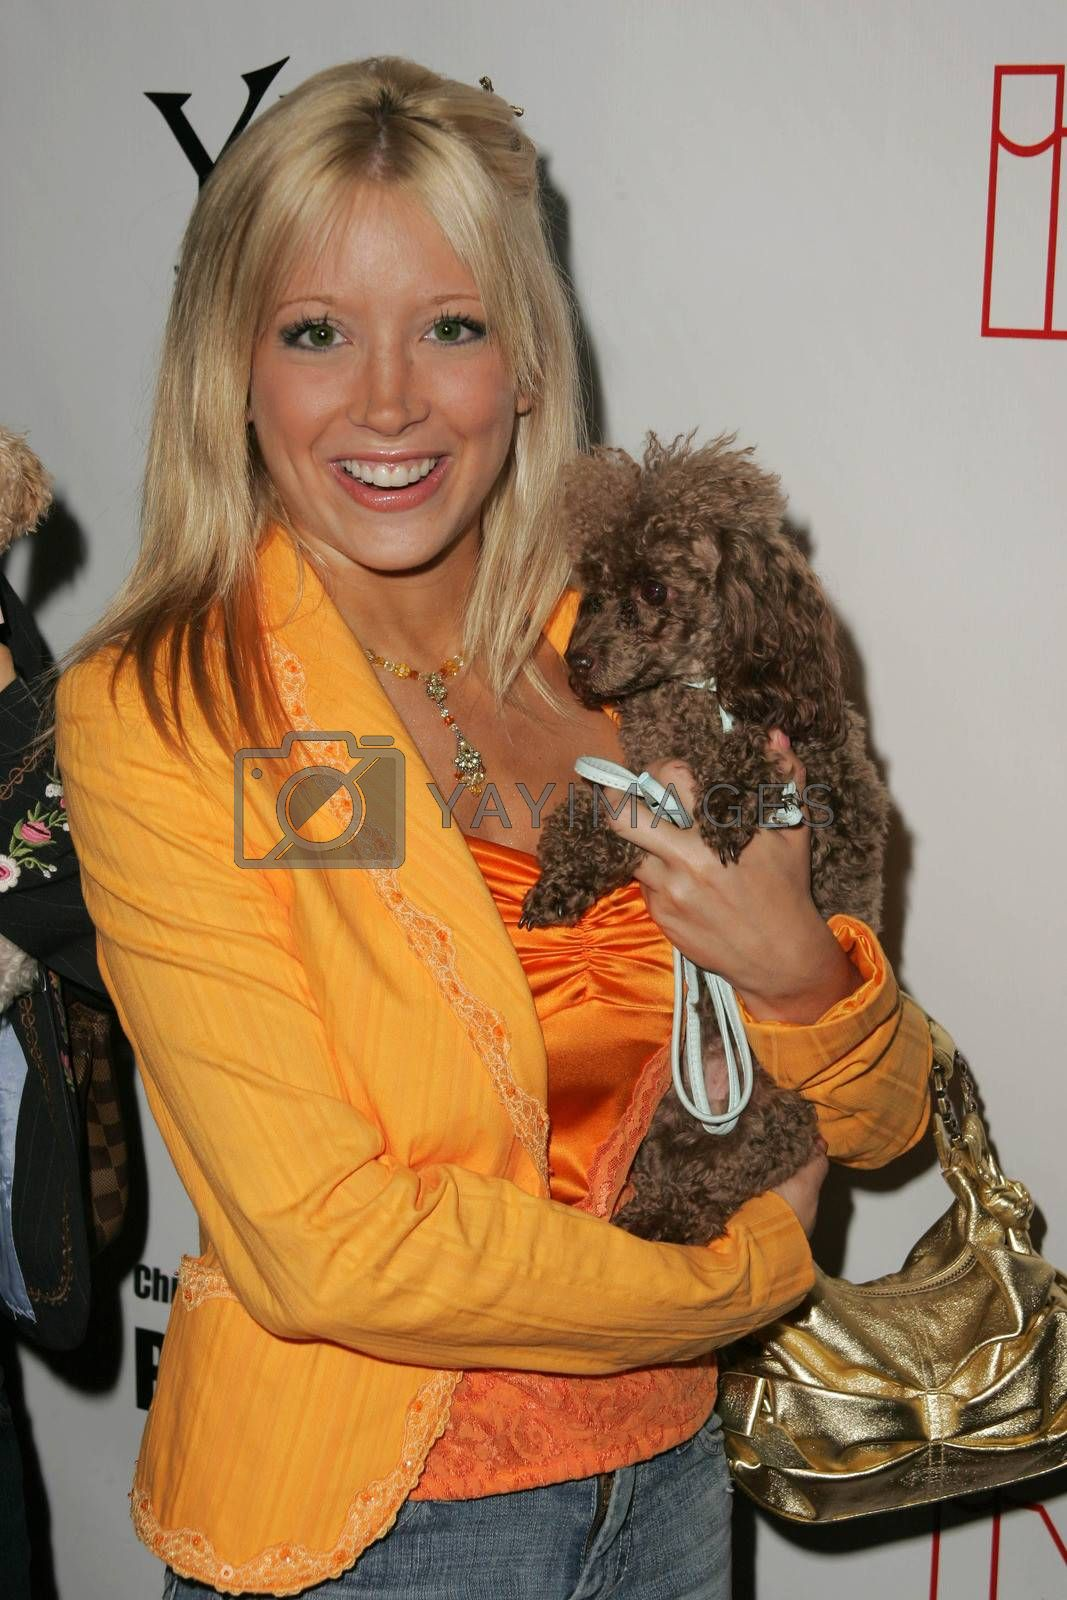 Courtney Peldon at the In Touch Presents Pets And Their Stars Party, Cabana Club, Hollywood, CA 09-21-05